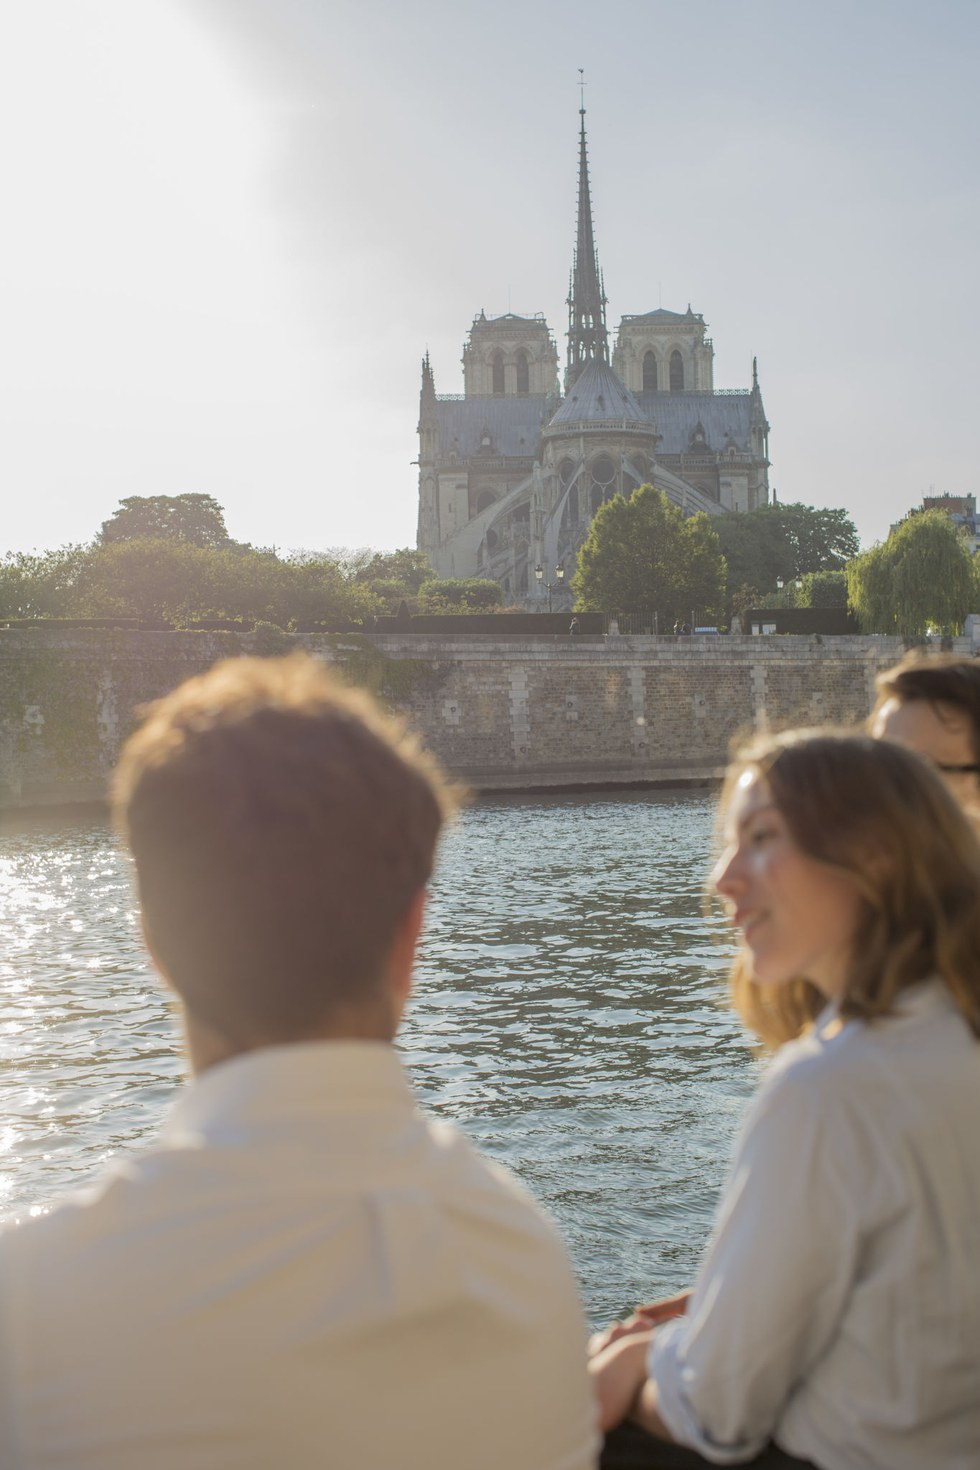 Notre Dame from across the Seine